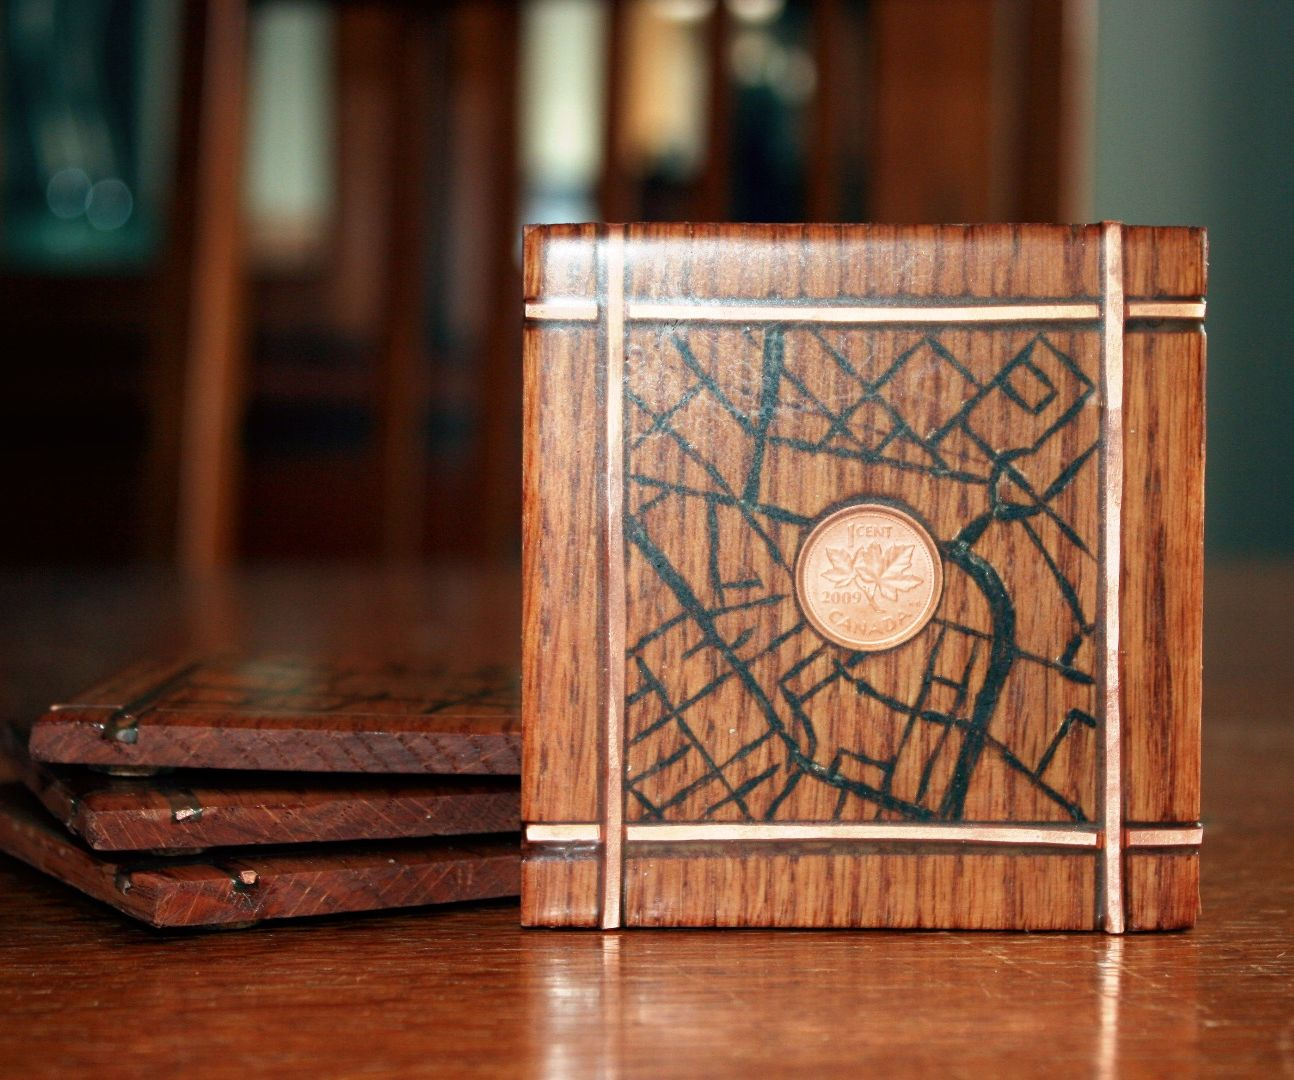 How to Make a Personalized Map Coaster